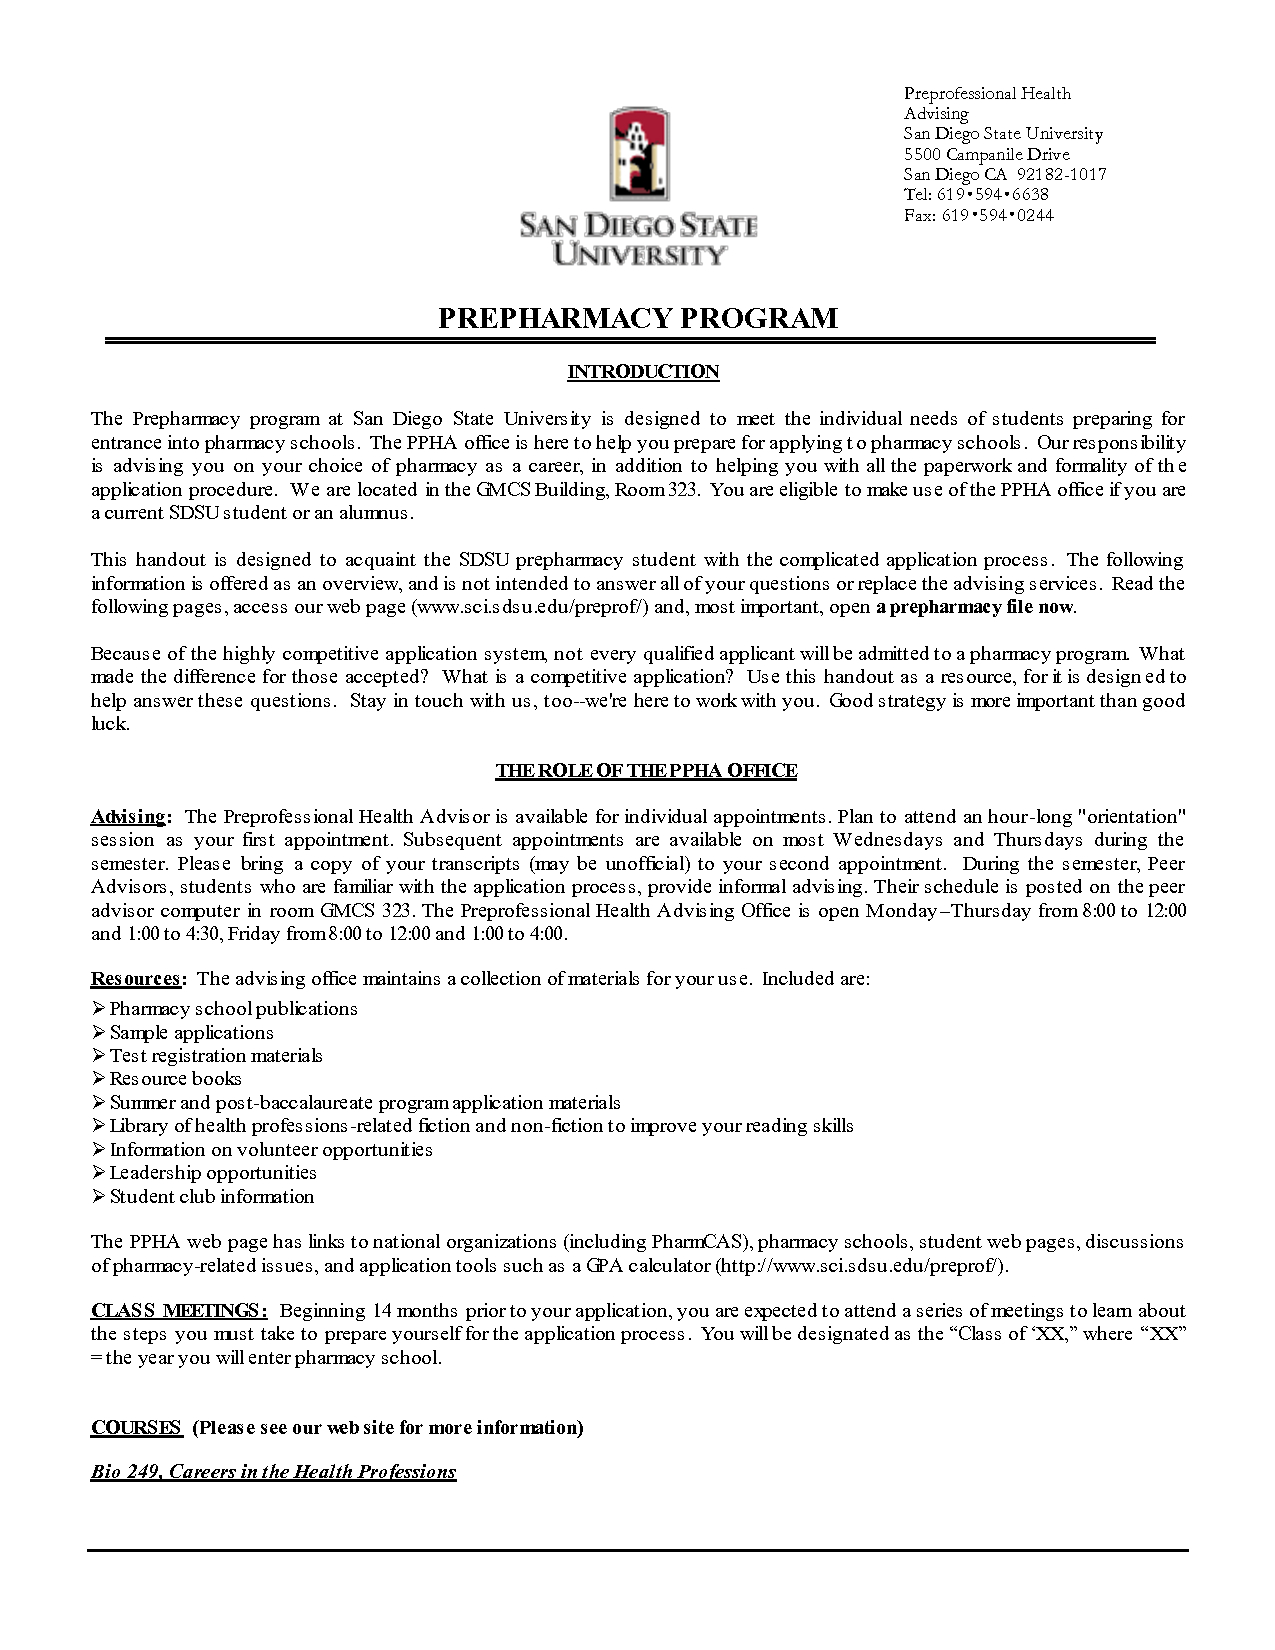 Resume for Letter Of Recommendation Template - How to Write A Good Cover Letter for Resume Name Essay Examples